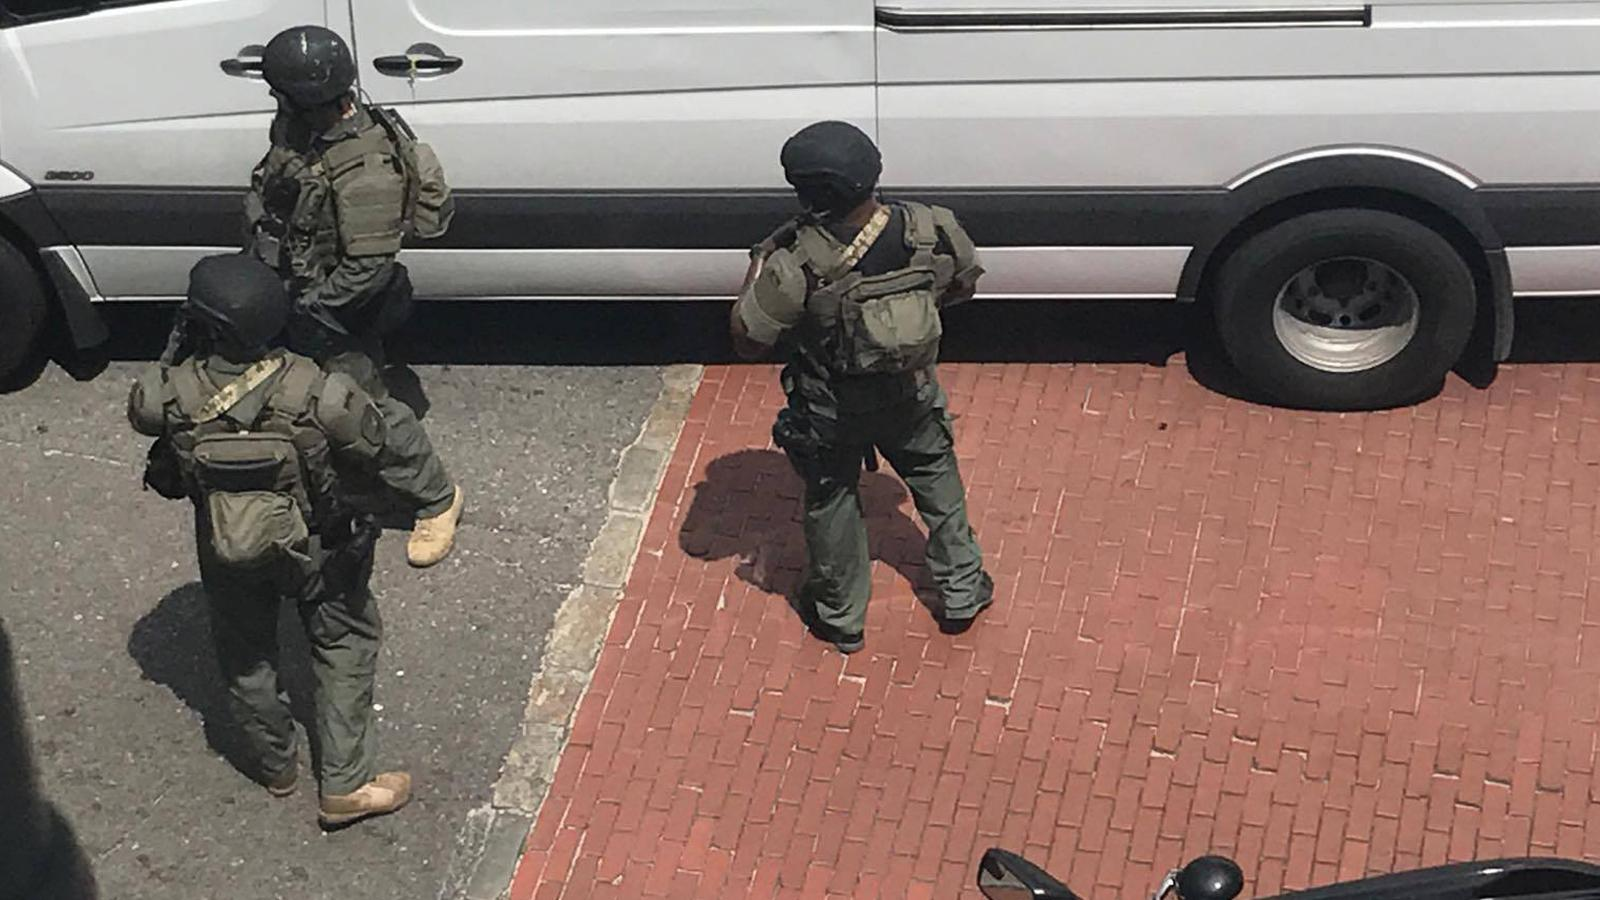 Armored officers stand ready outside a van on the street near the Virginia's on King restaurant. (Provided/Robbie Kimbrough)